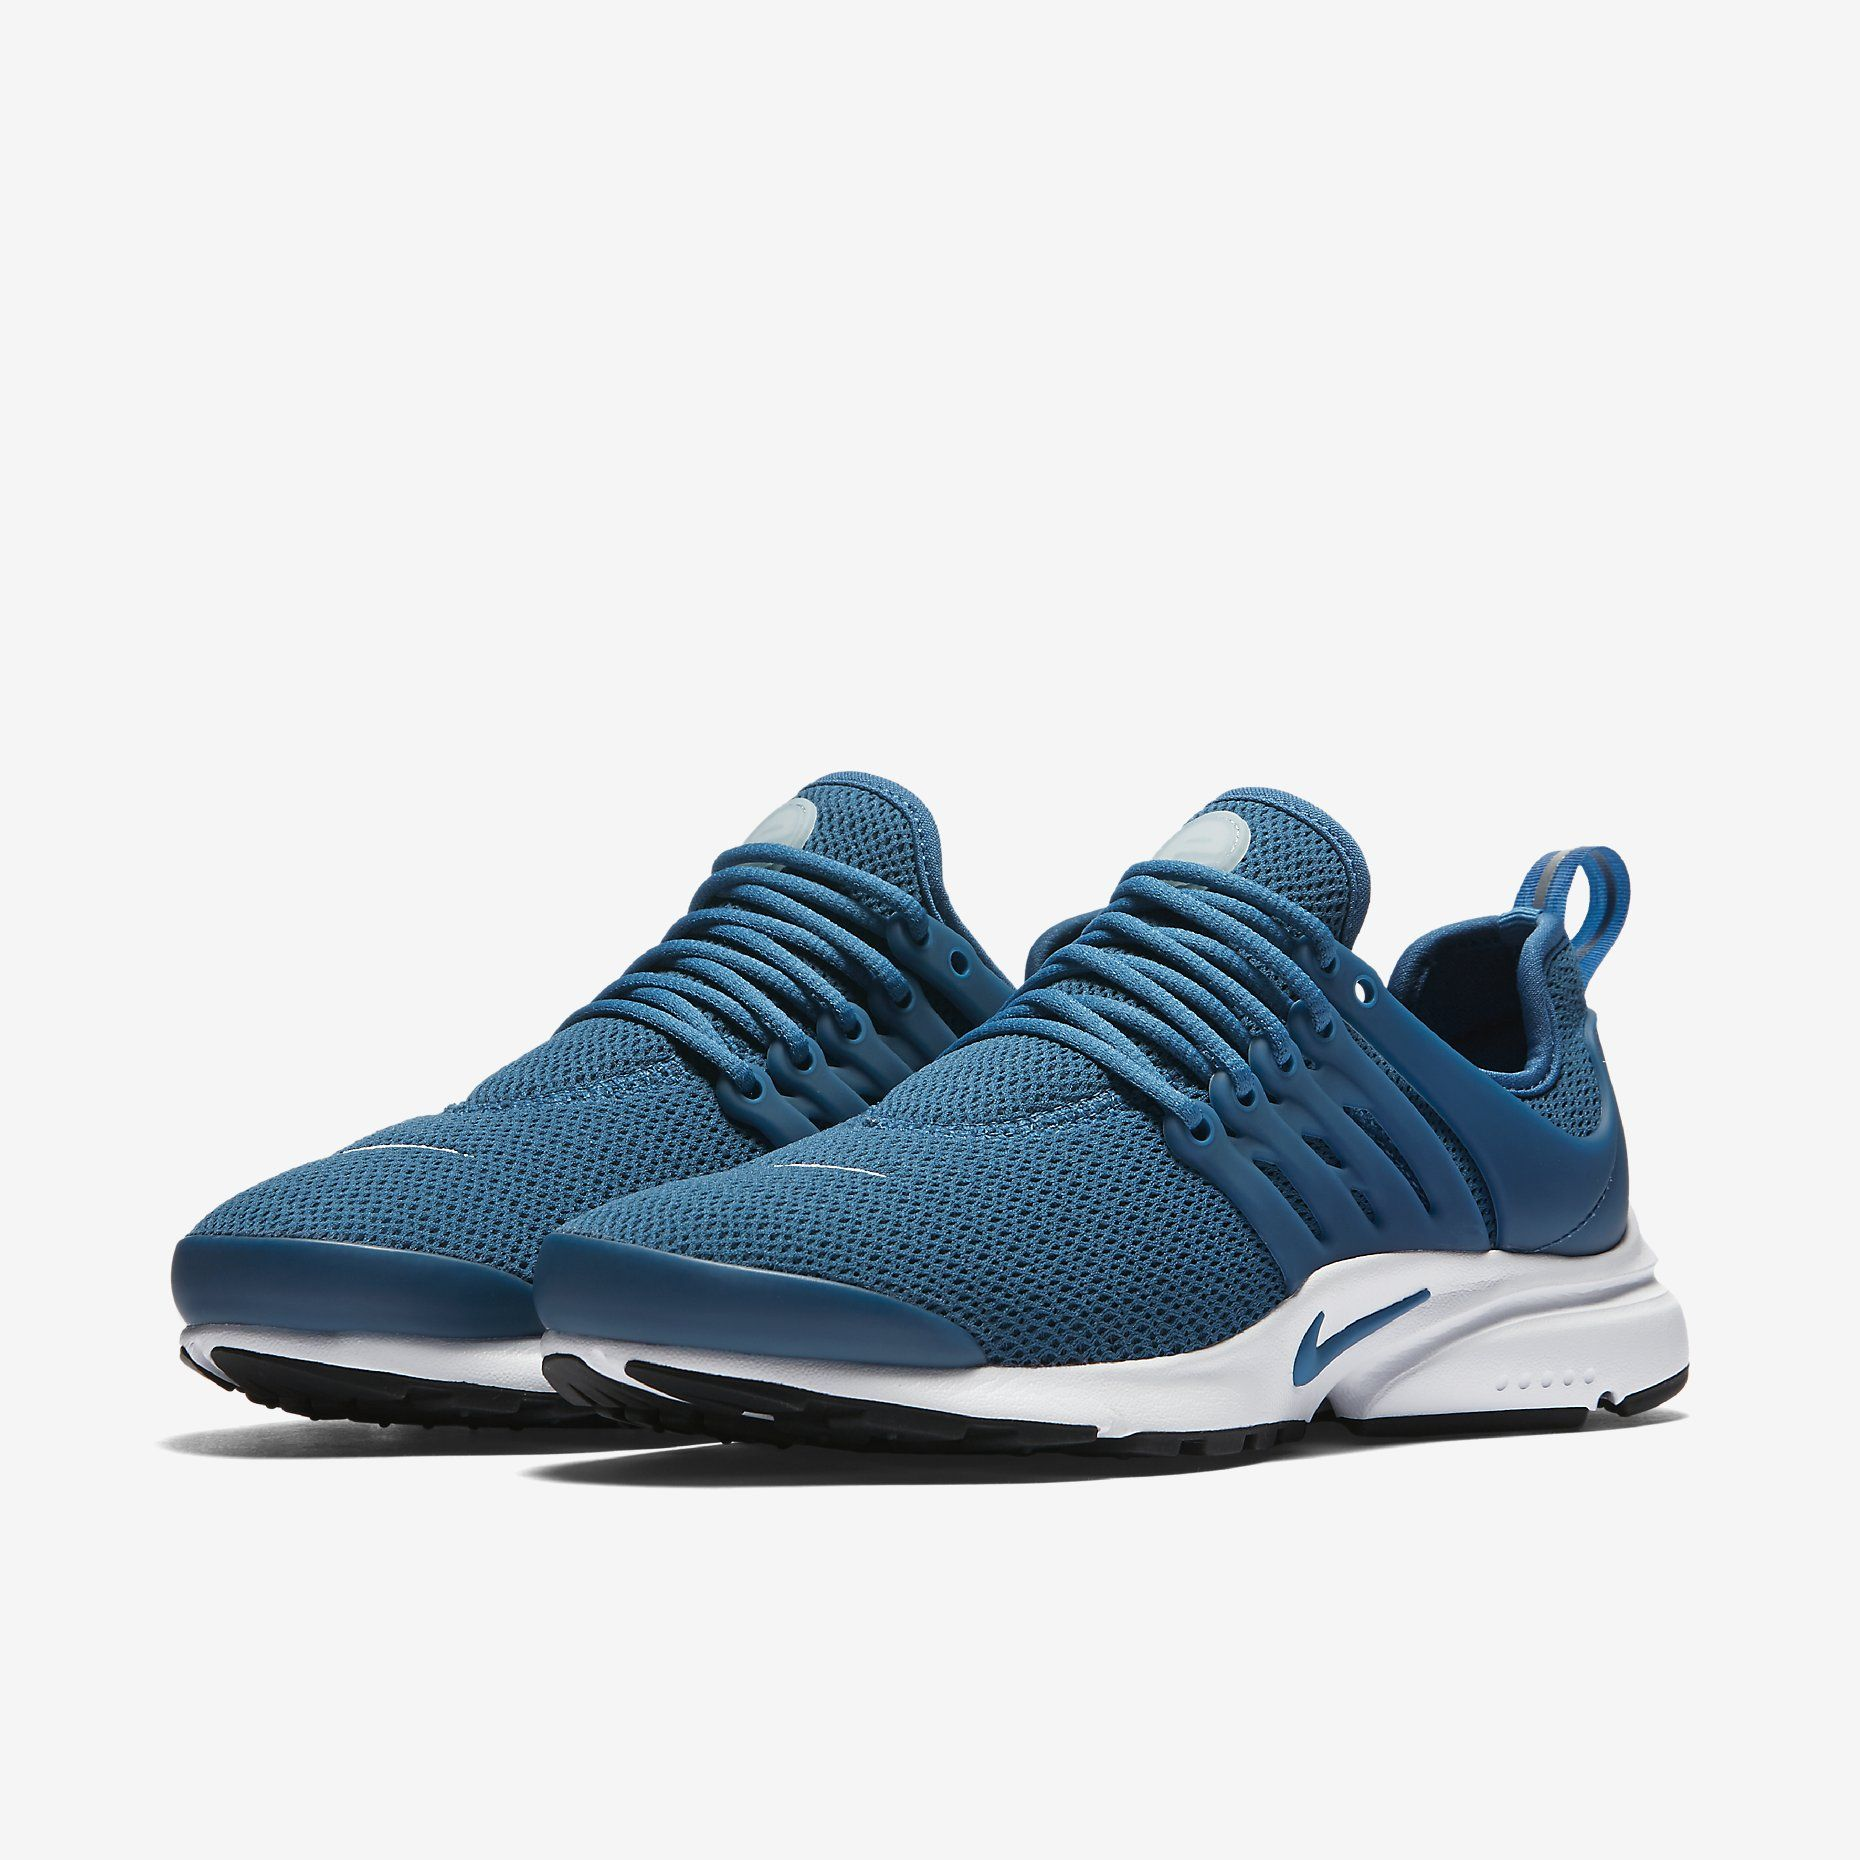 Quick Buy Nike Air Presto Industrial Blue/Mica Blue/White Womens Shoes &  Trainers to enjoy the Best Discount Prices.